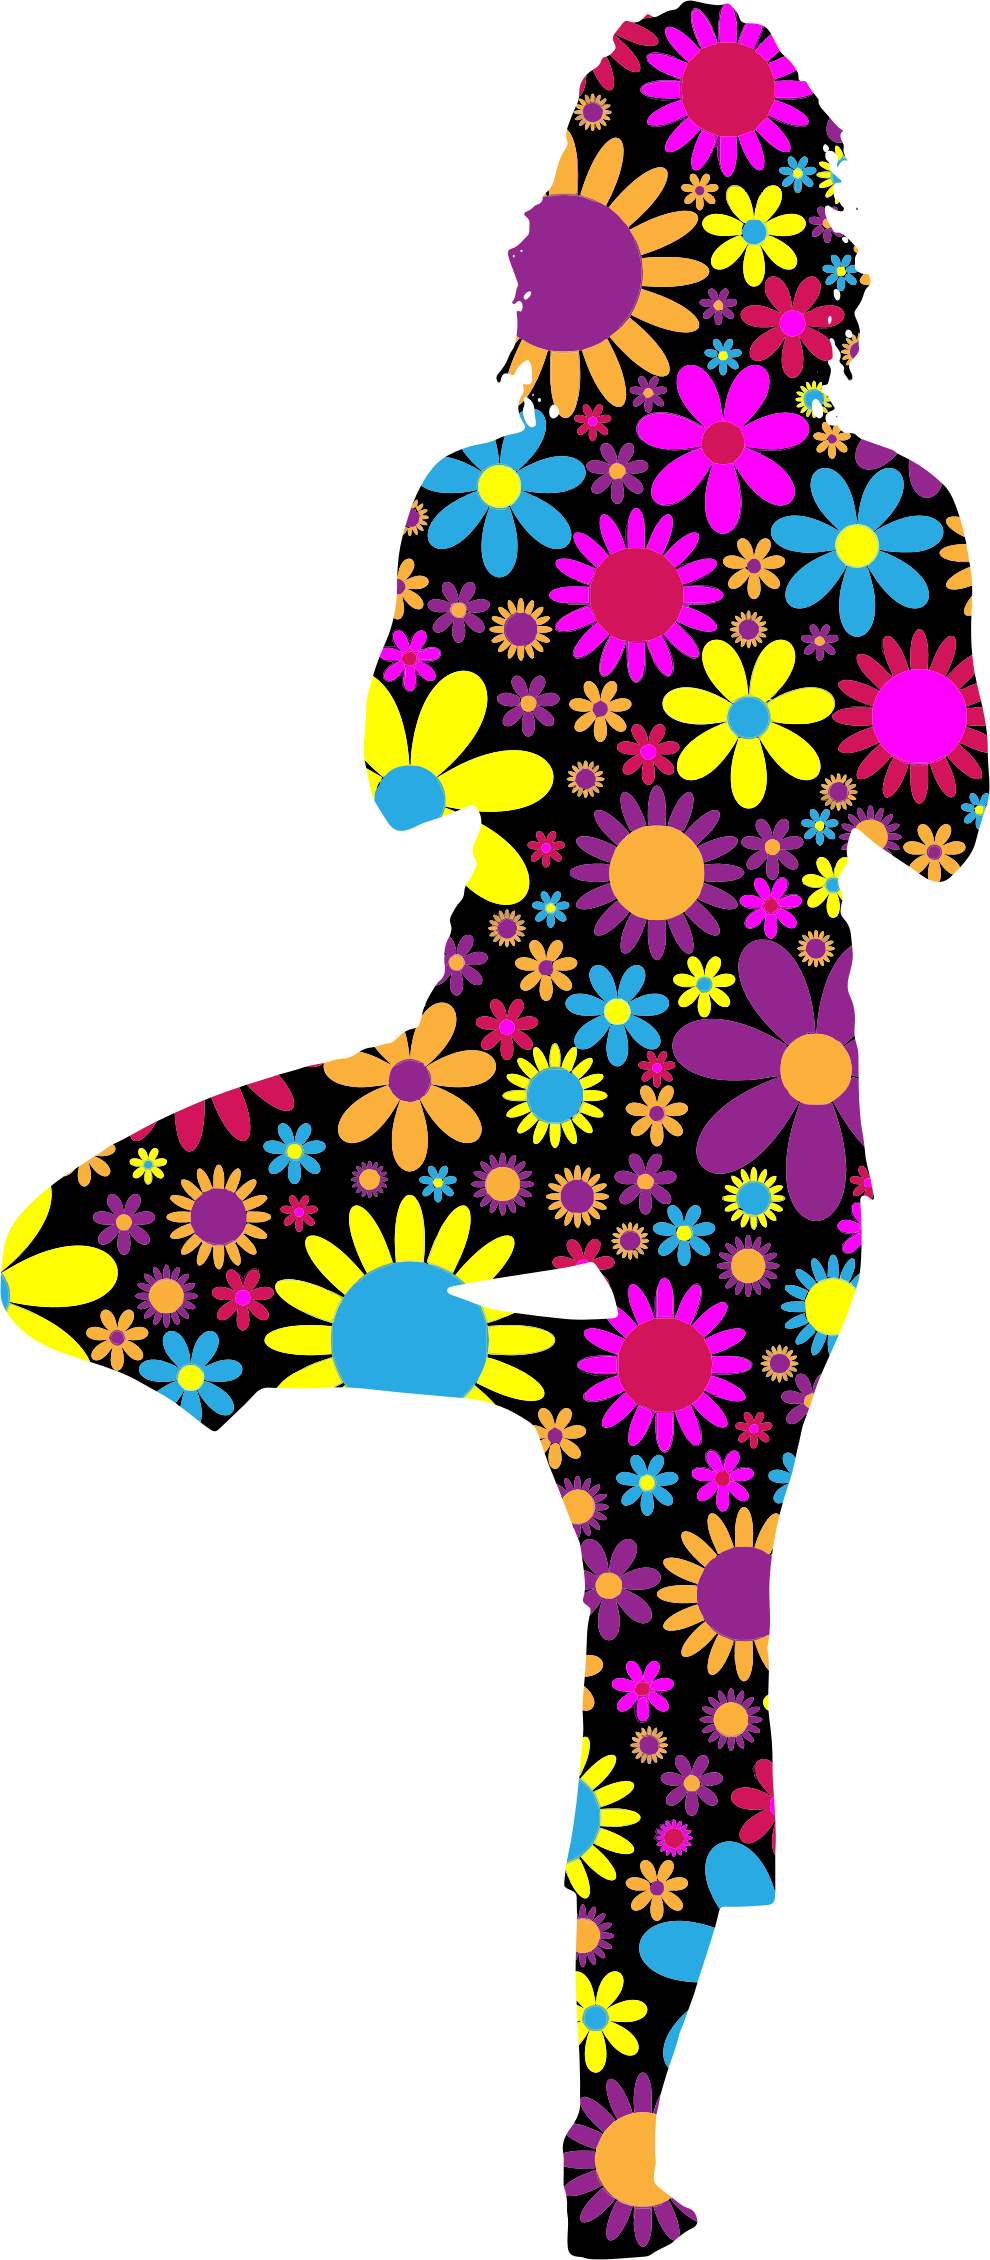 Floral Woman Yoga Pose Silhouette by GDJ